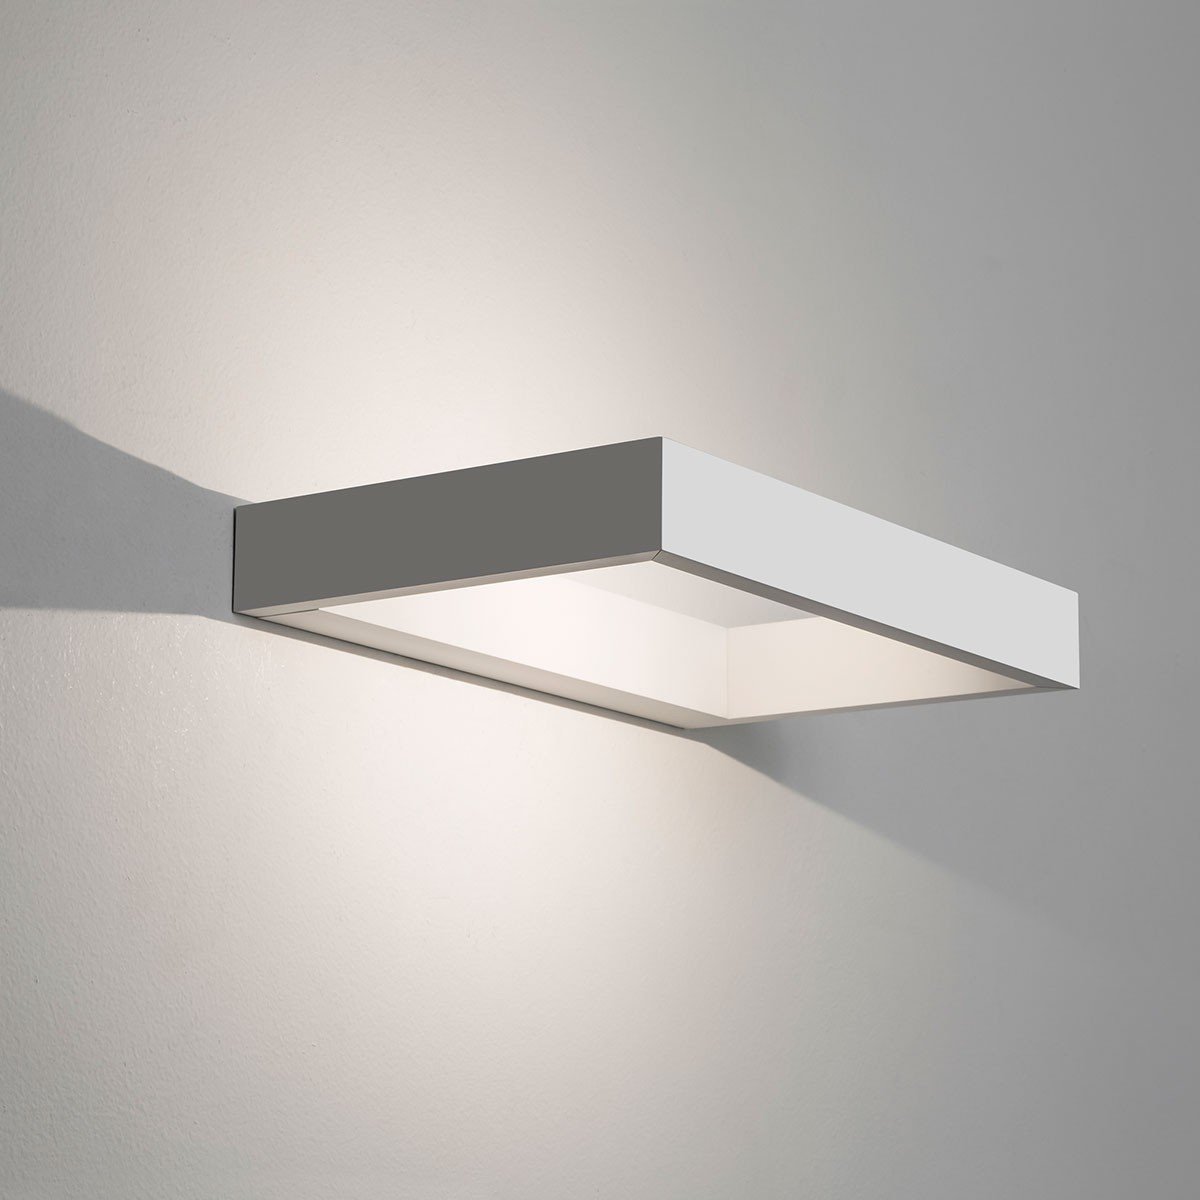 Led Wall Light White: Astro D-Light White LED Wall Light At UK Electrical Supplies